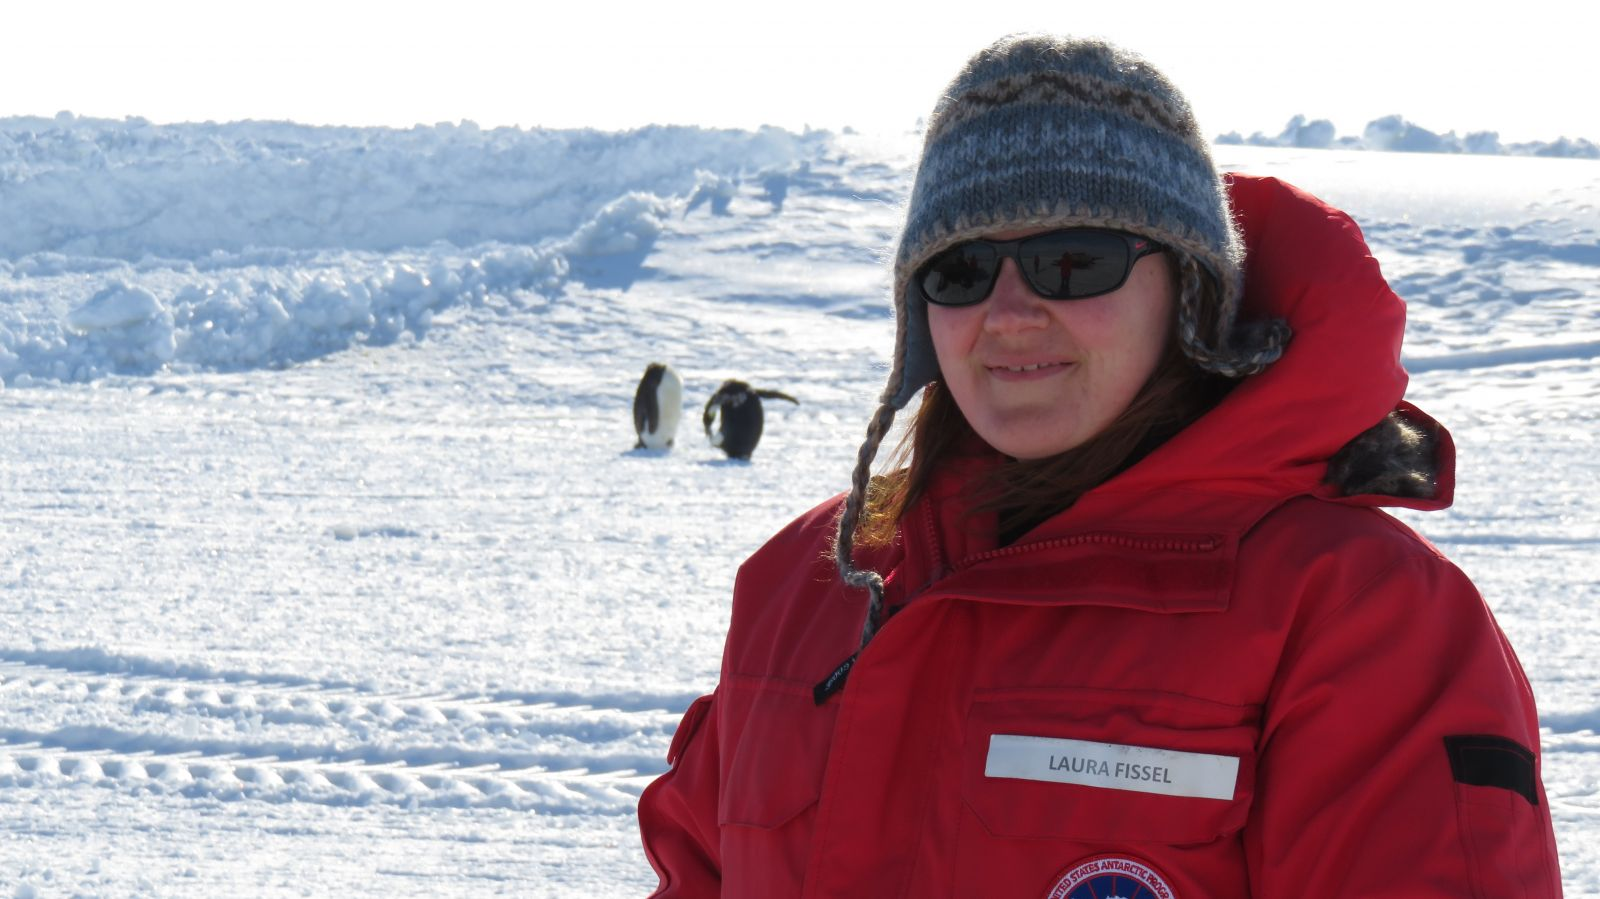 Laura Fissel at Pheonix Airfield, Antarctica with two emperor penguins in the background.